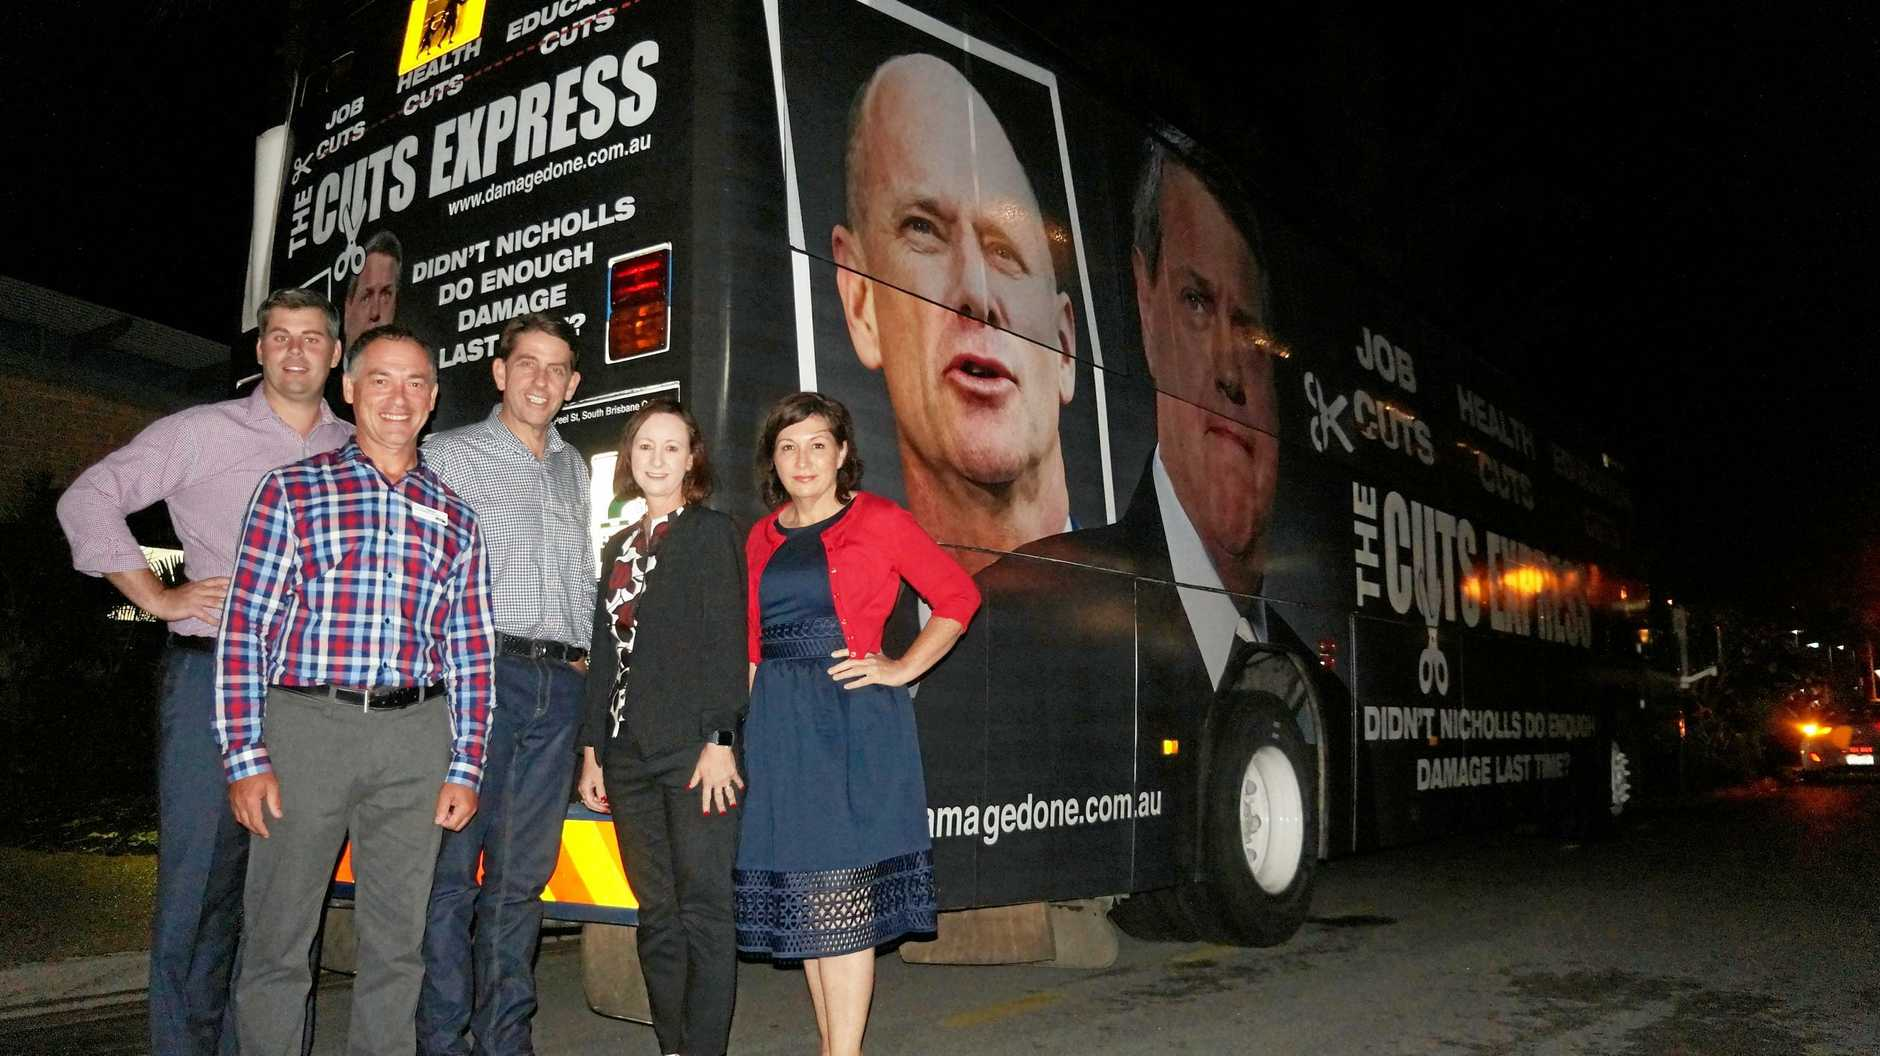 ON THE ROAD: MPs Mark Ryan, Cameron Dick, Yvette D'ath and Leeanne Enoch with Hervey Bay Labor candidate Adrian Tantari (front) and the Cuts Express in the background.